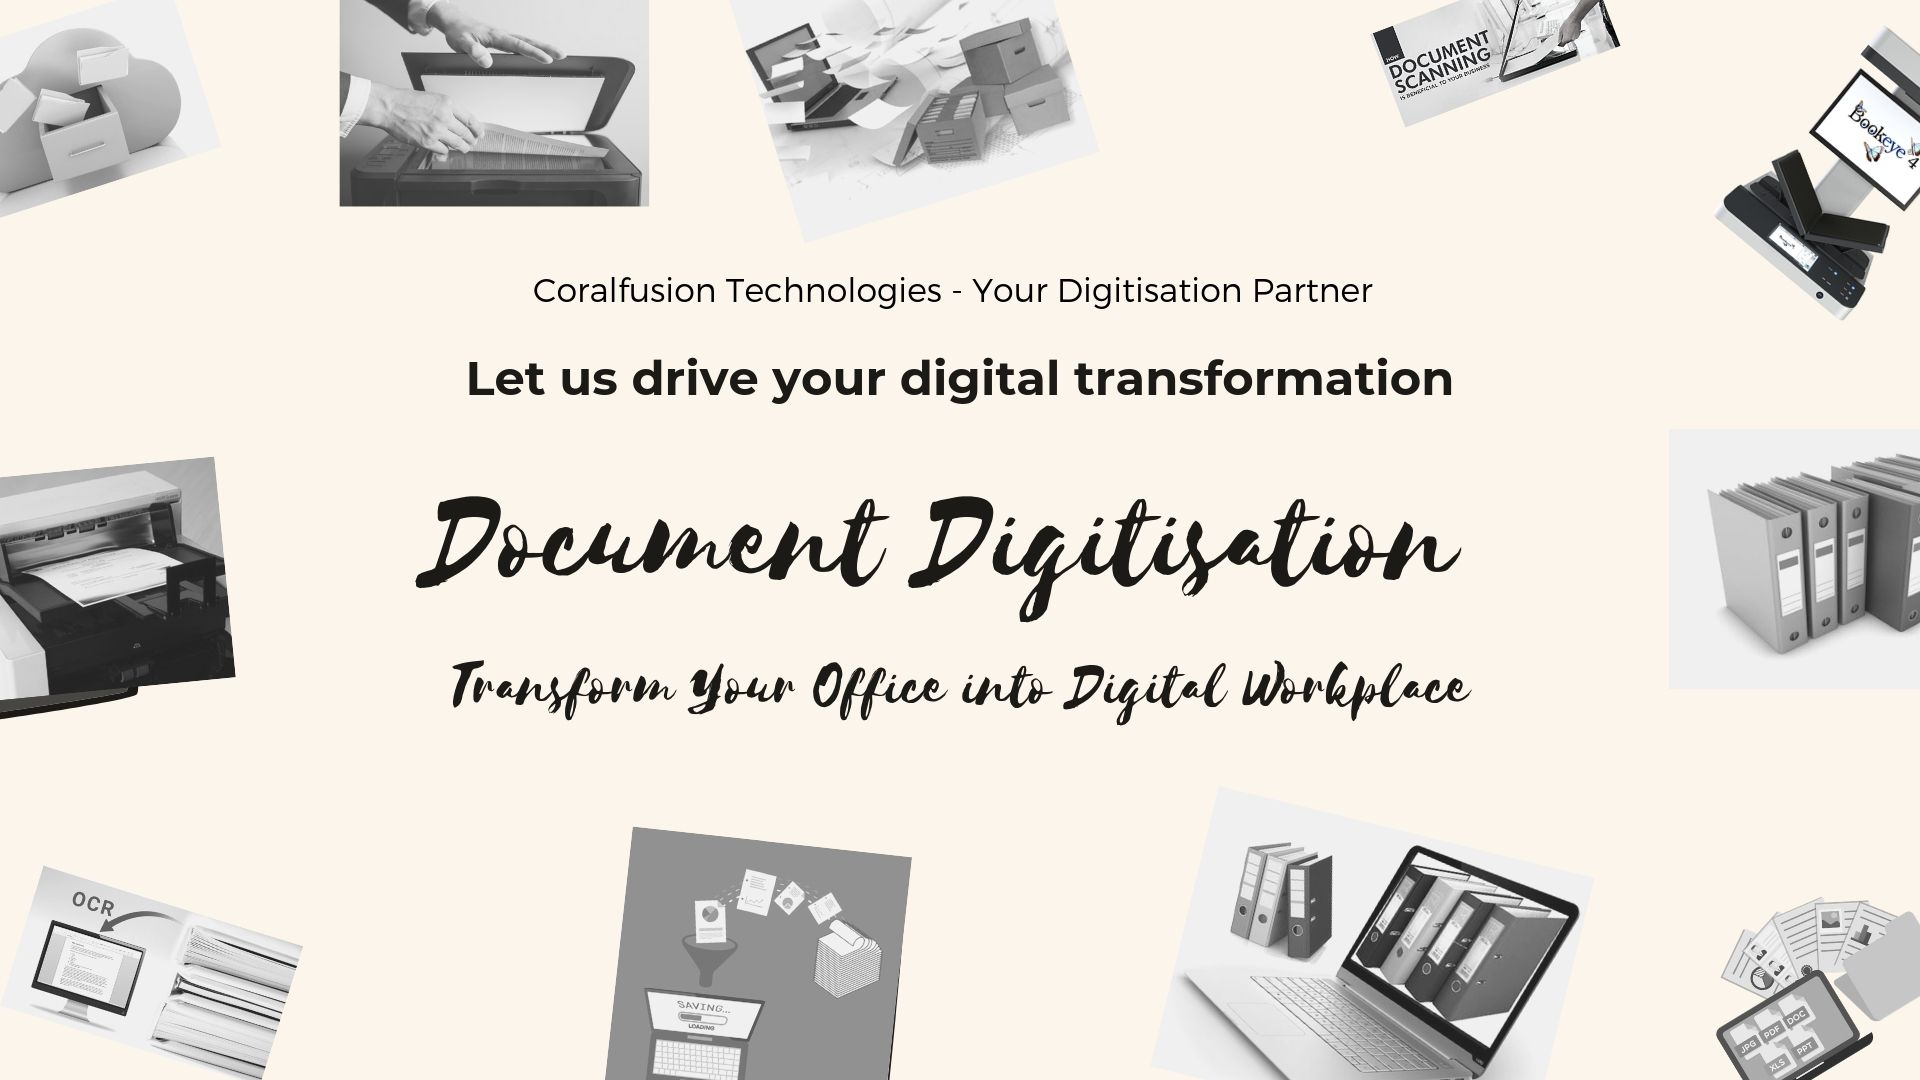 document digitization services in chennai